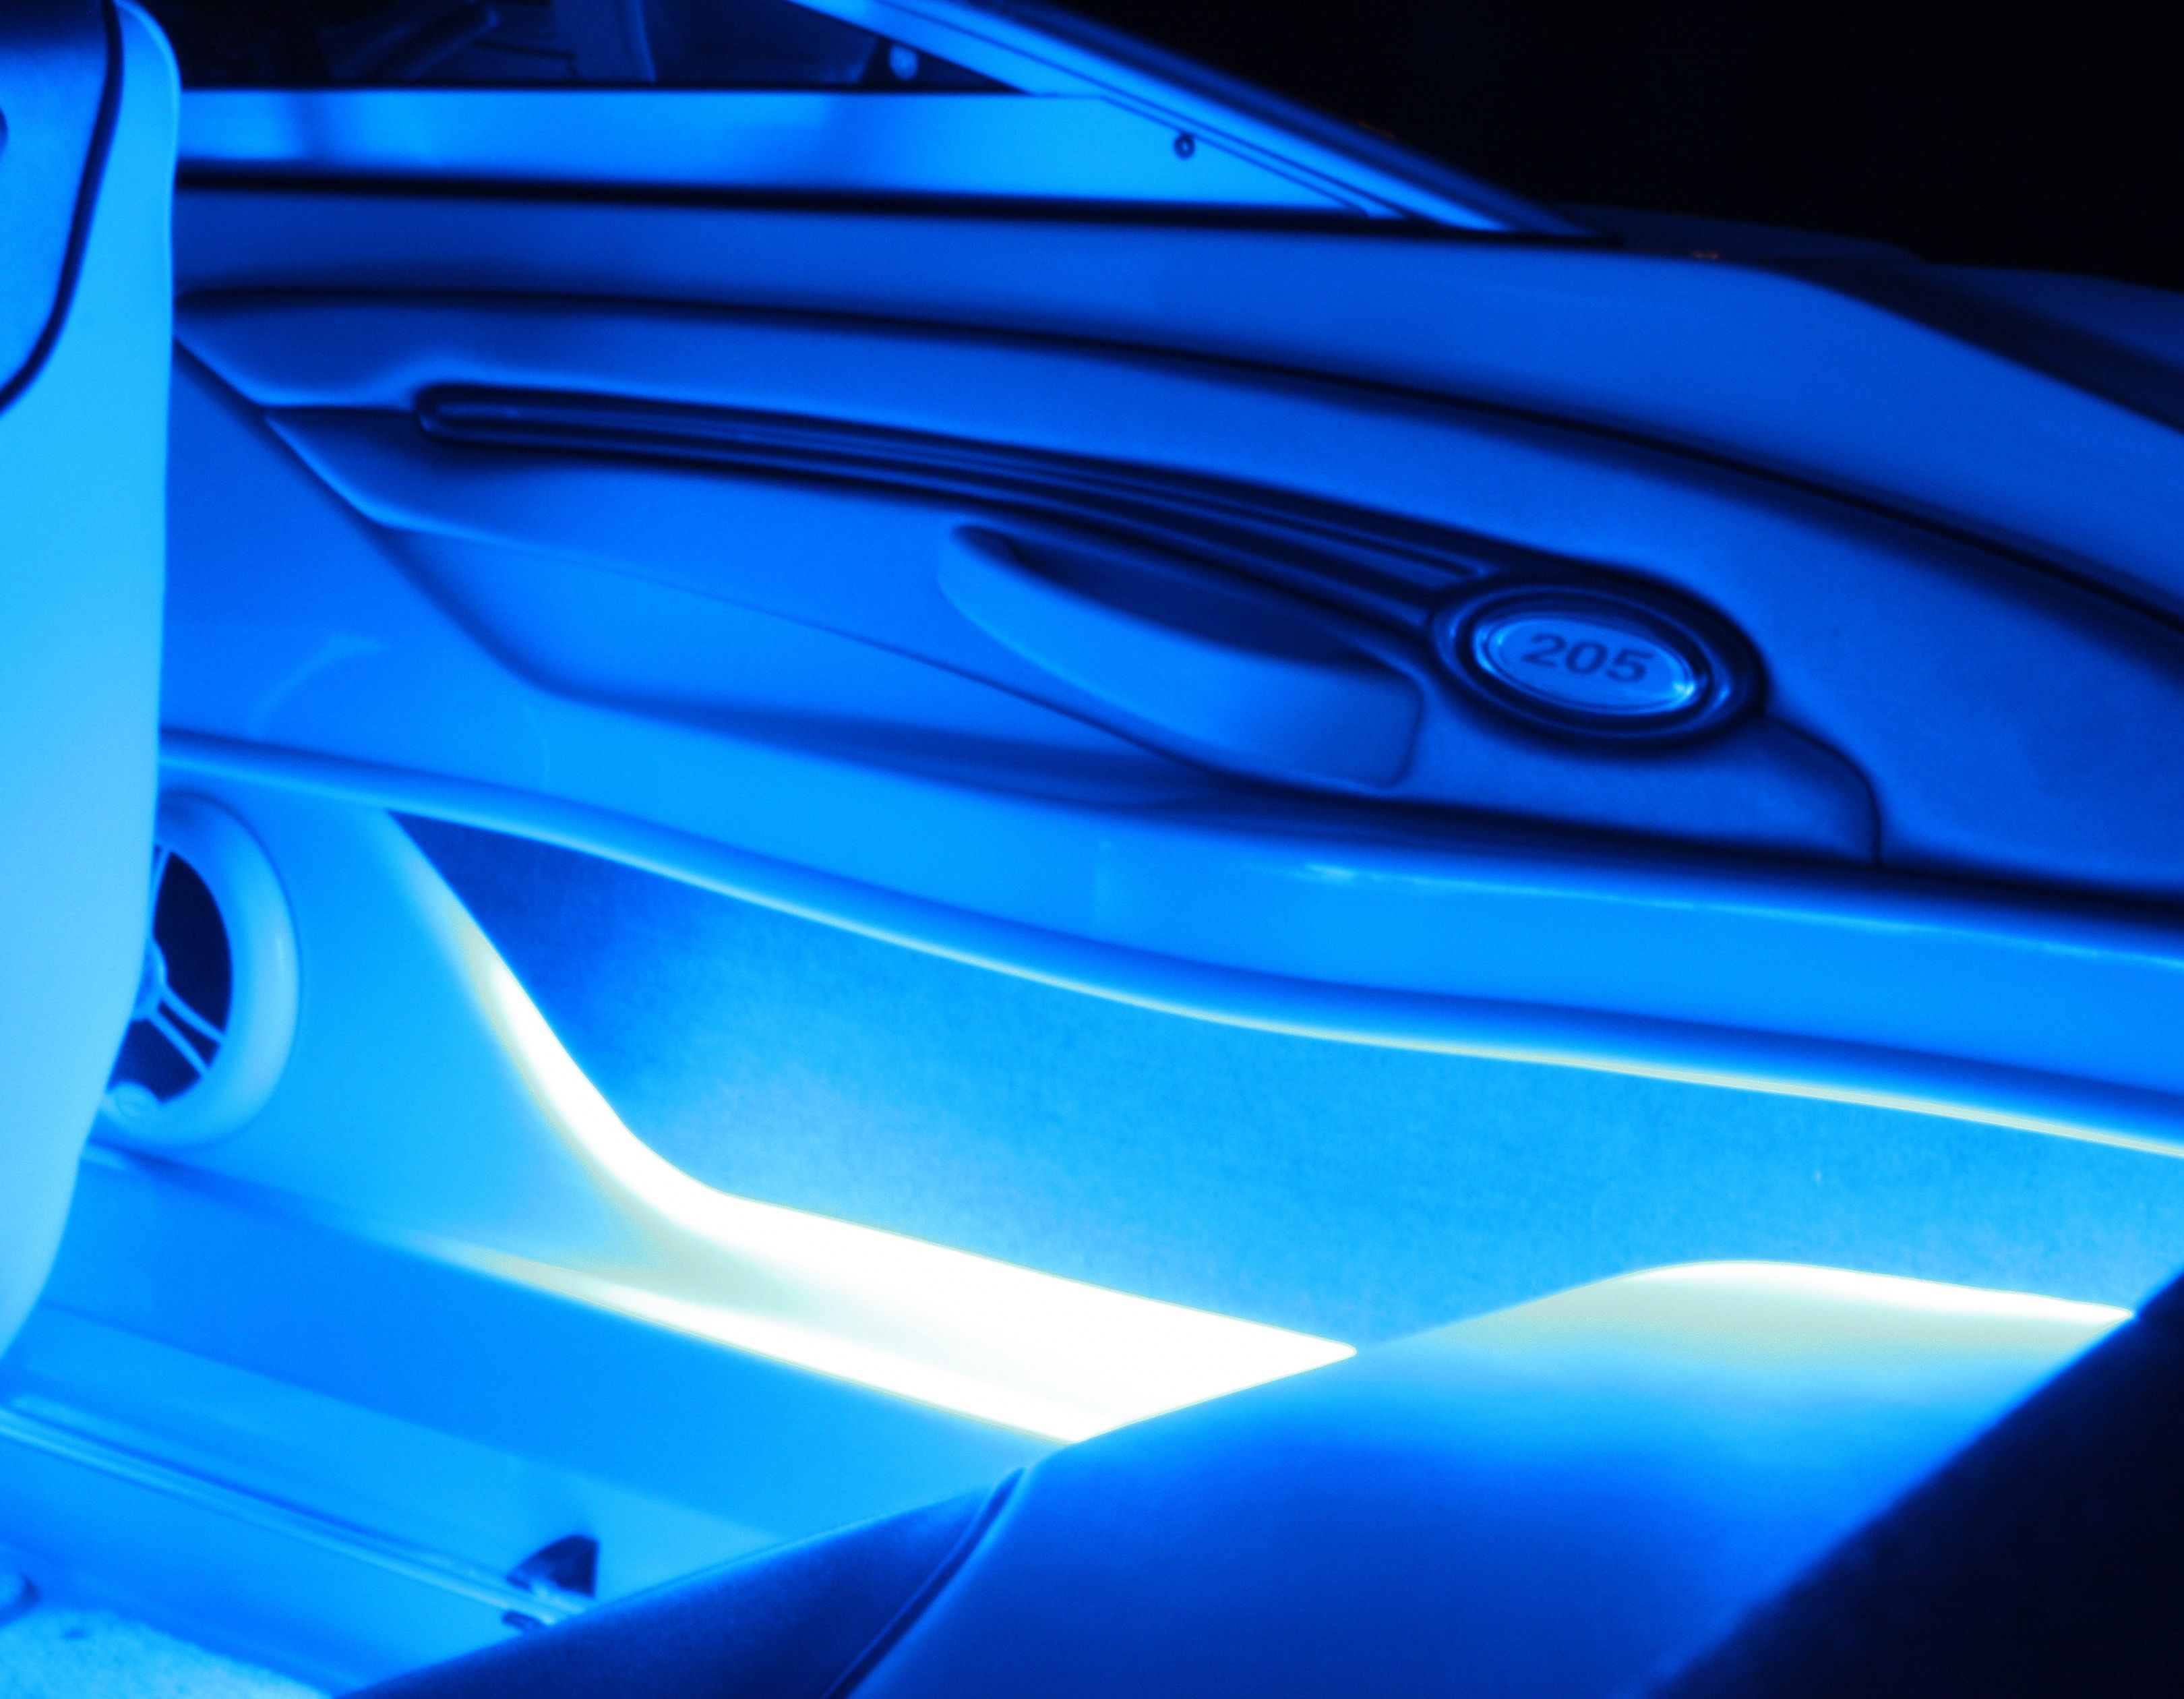 LED boats lights | Ultimate LED Boat Lighting Kits & LED boats lights | Ultimate LED Boat Lighting Kits | Items for My ...